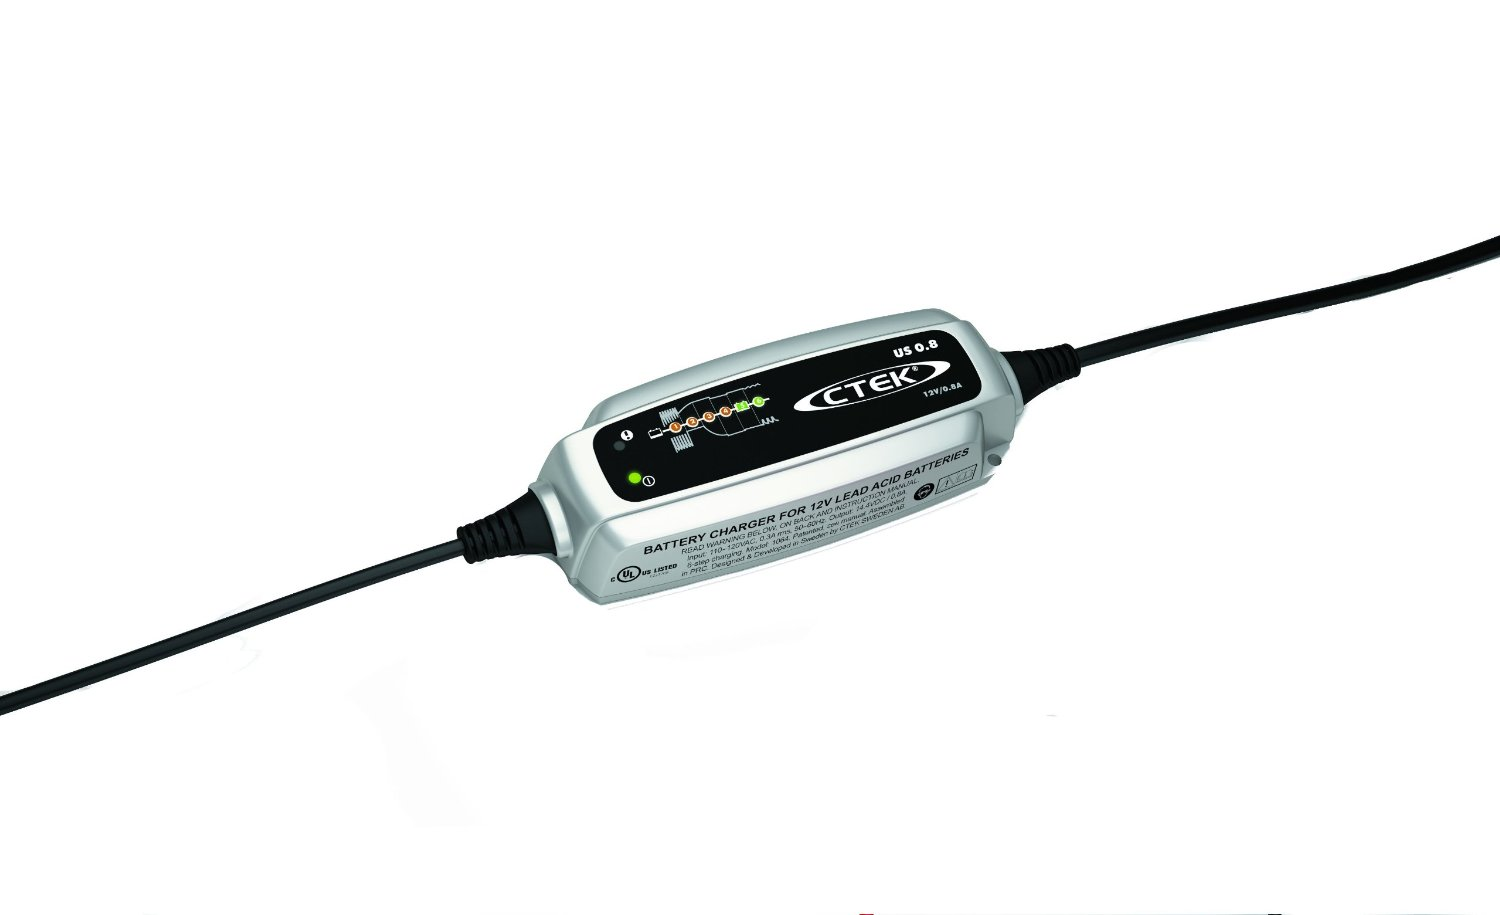 Ctek 56 865 Us 0 8 12 Volt Fully Automatic 6 Step Battery Charger